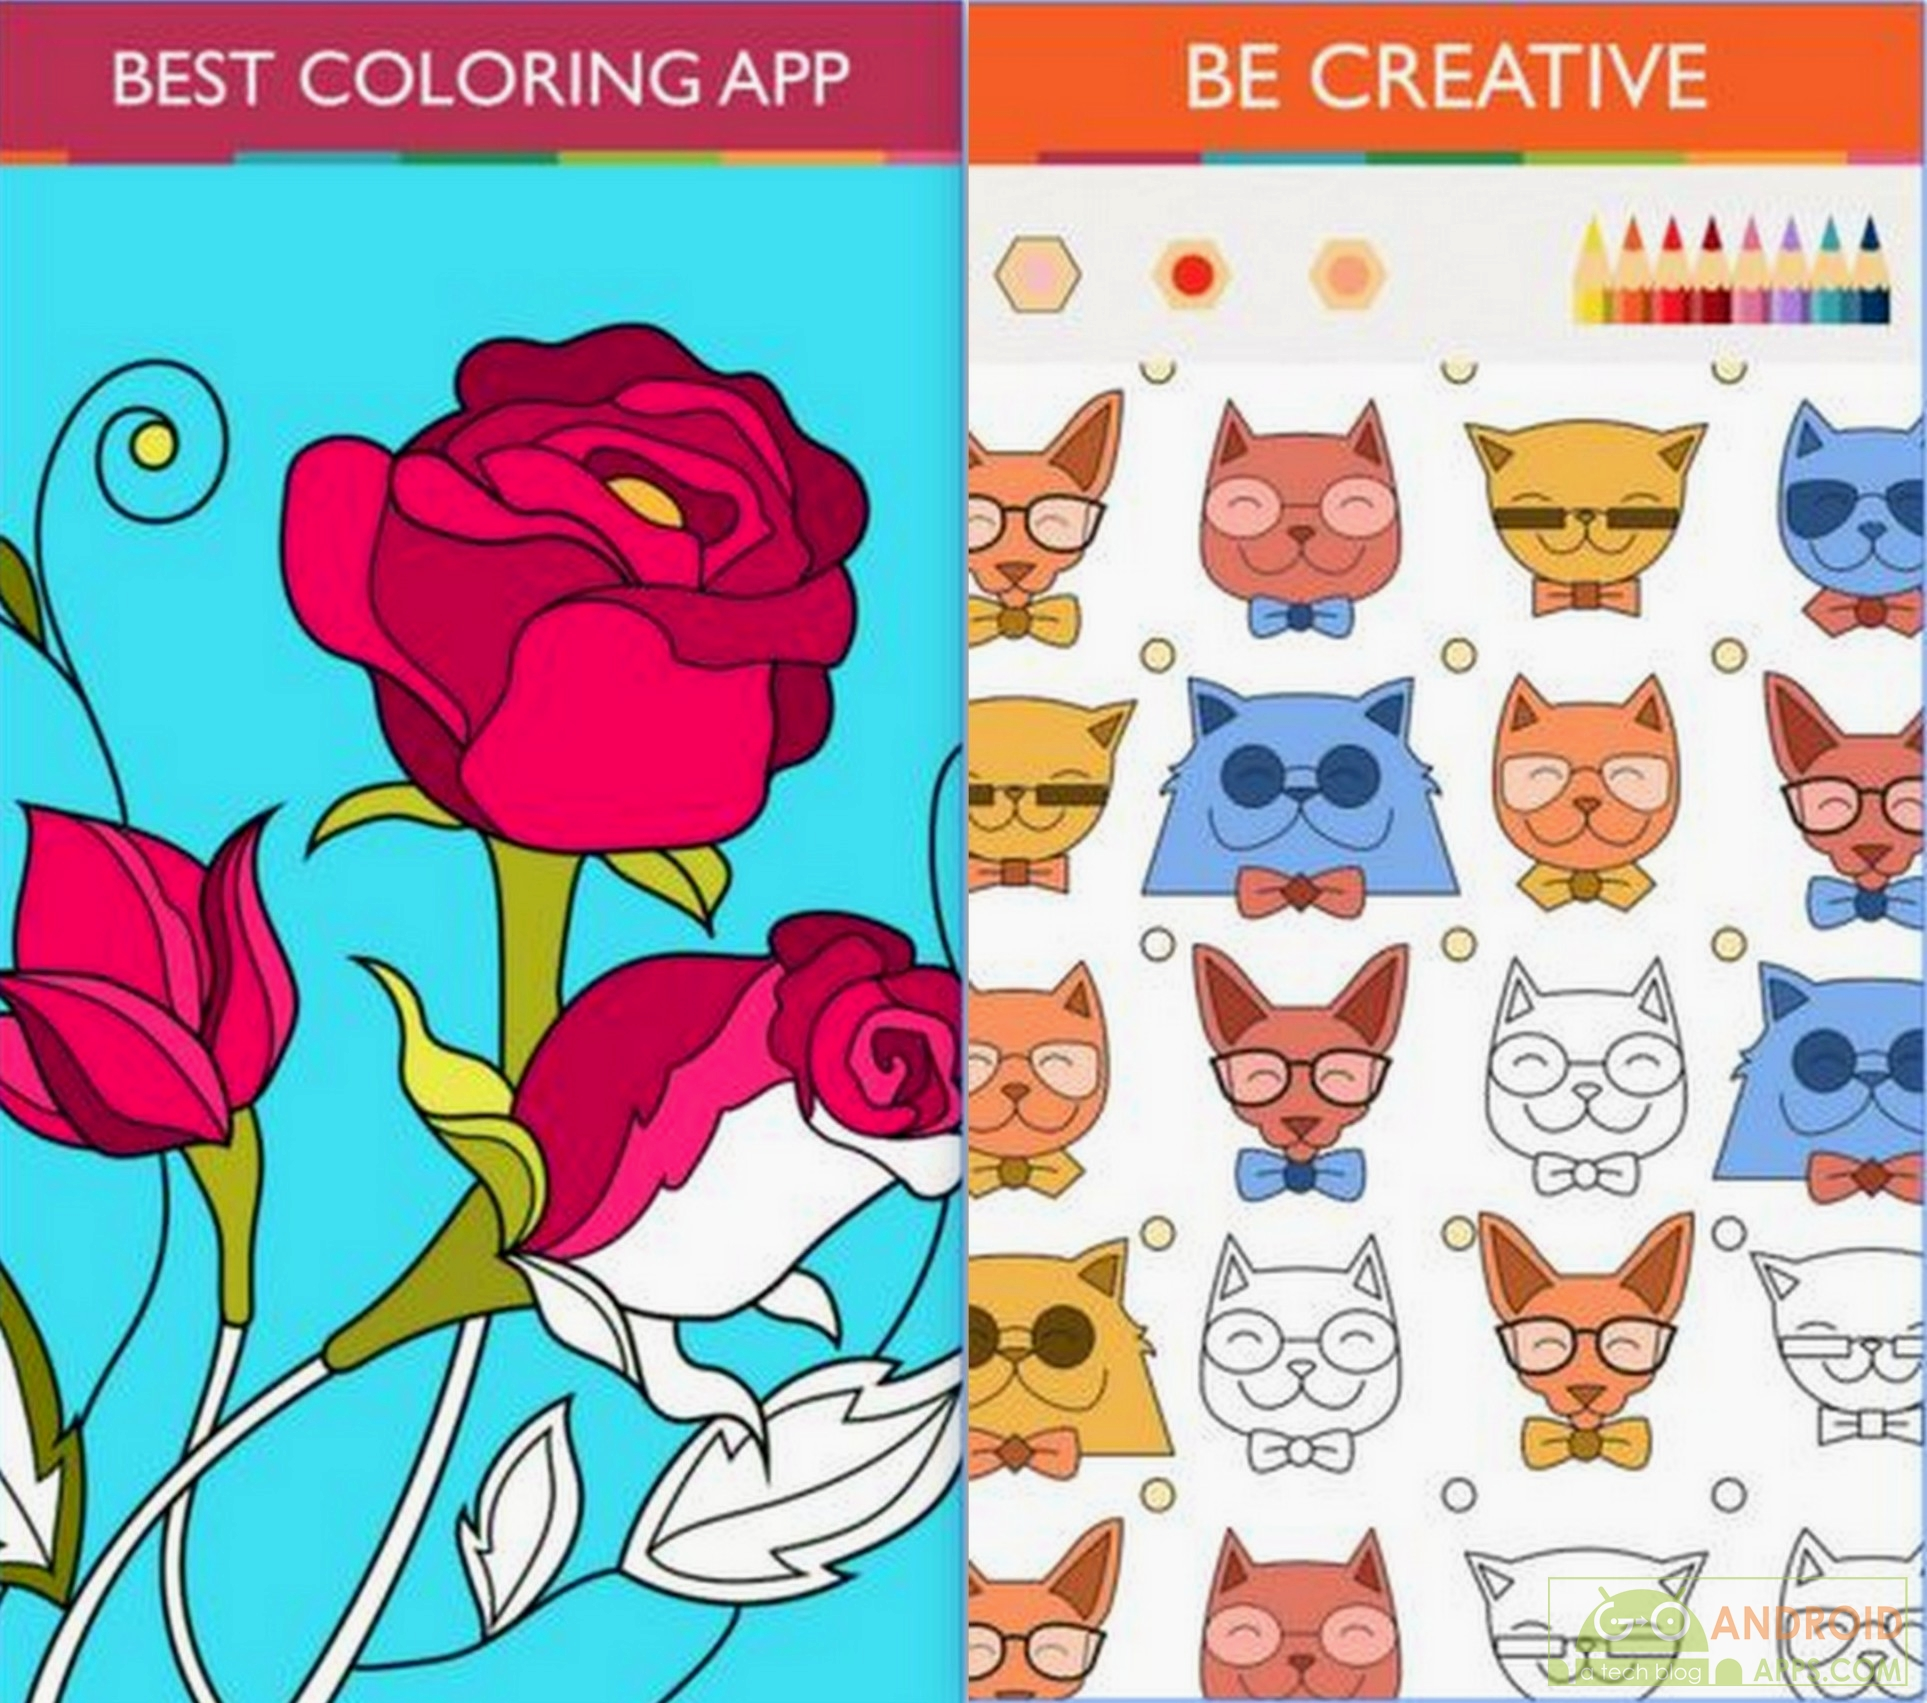 Colorfy plus coloring book - Colorfy Coloring Book Free App